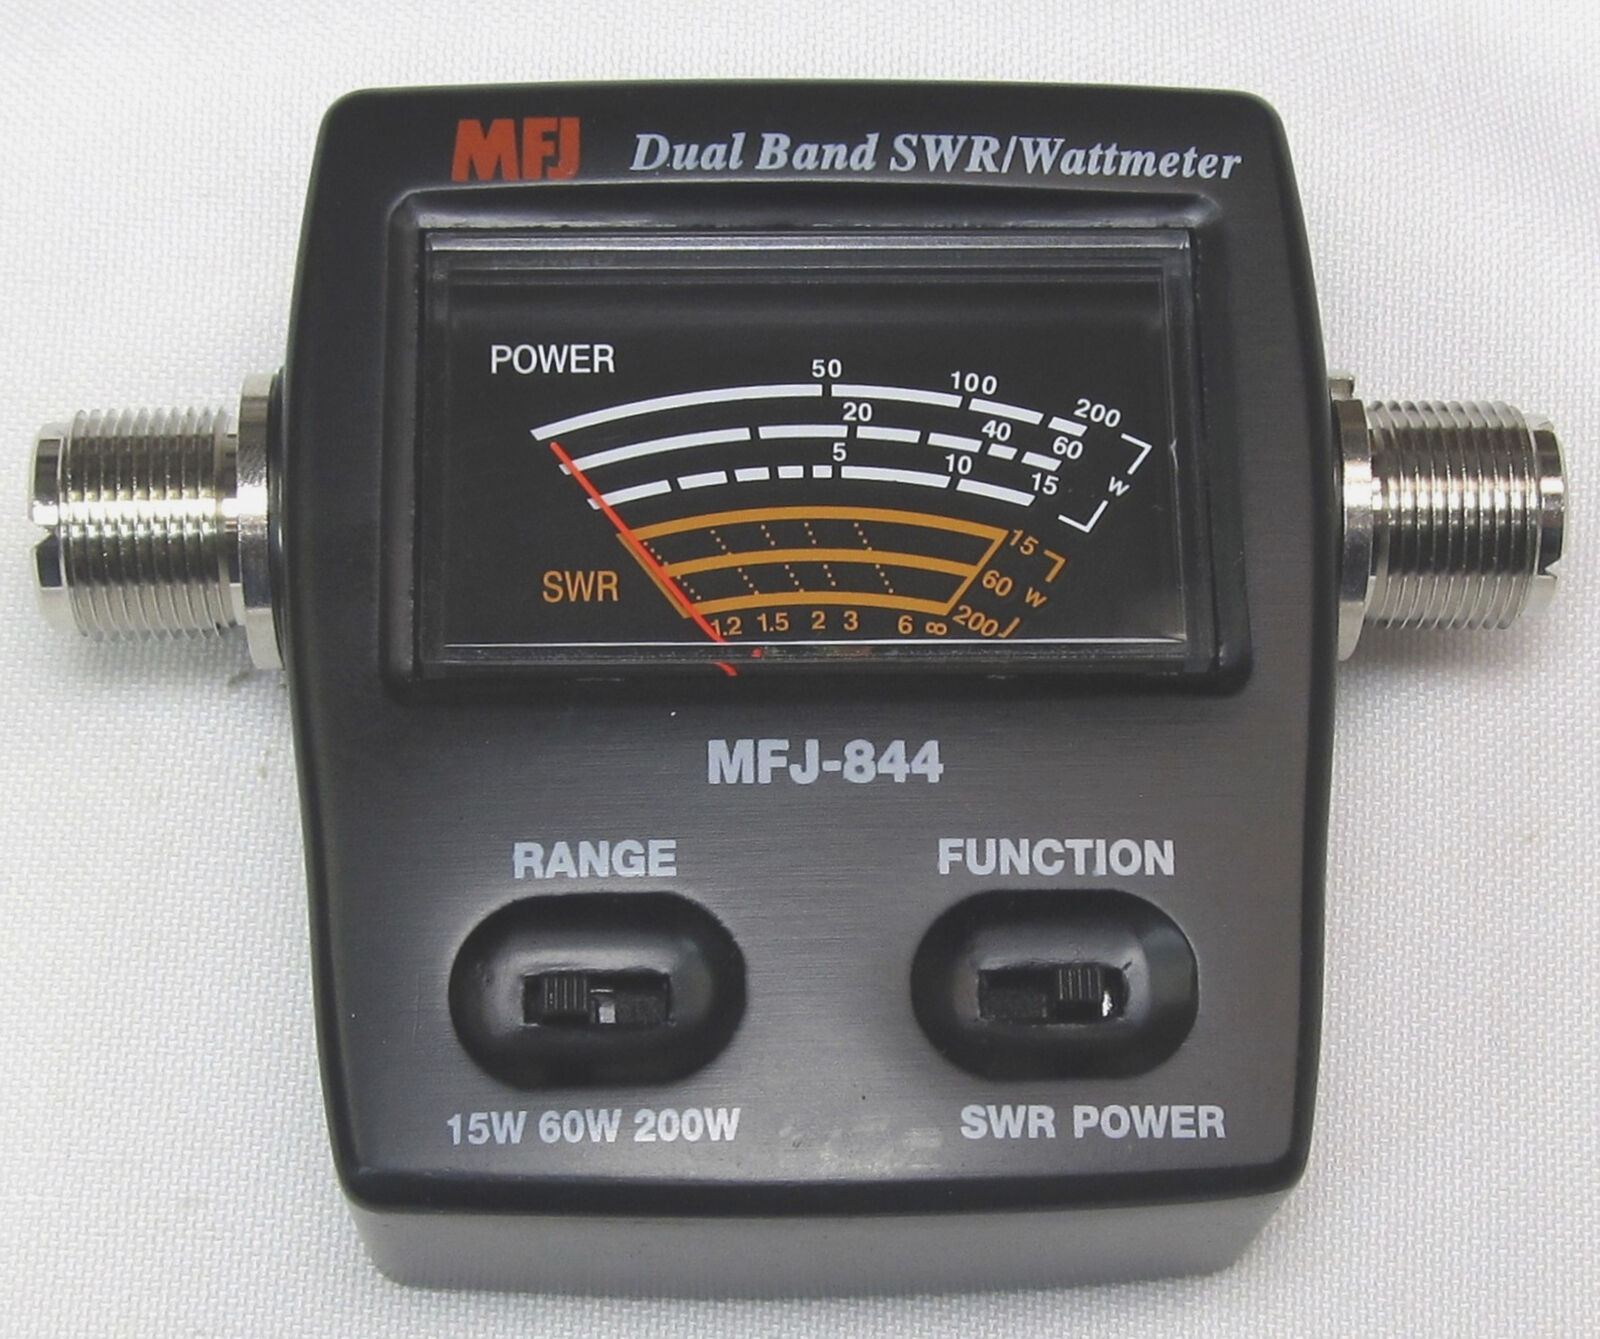 MFJ-844 VHF/UHF In-Line SWR/Wattmeter with SO-239 Connectors. Buy it now for 89.95